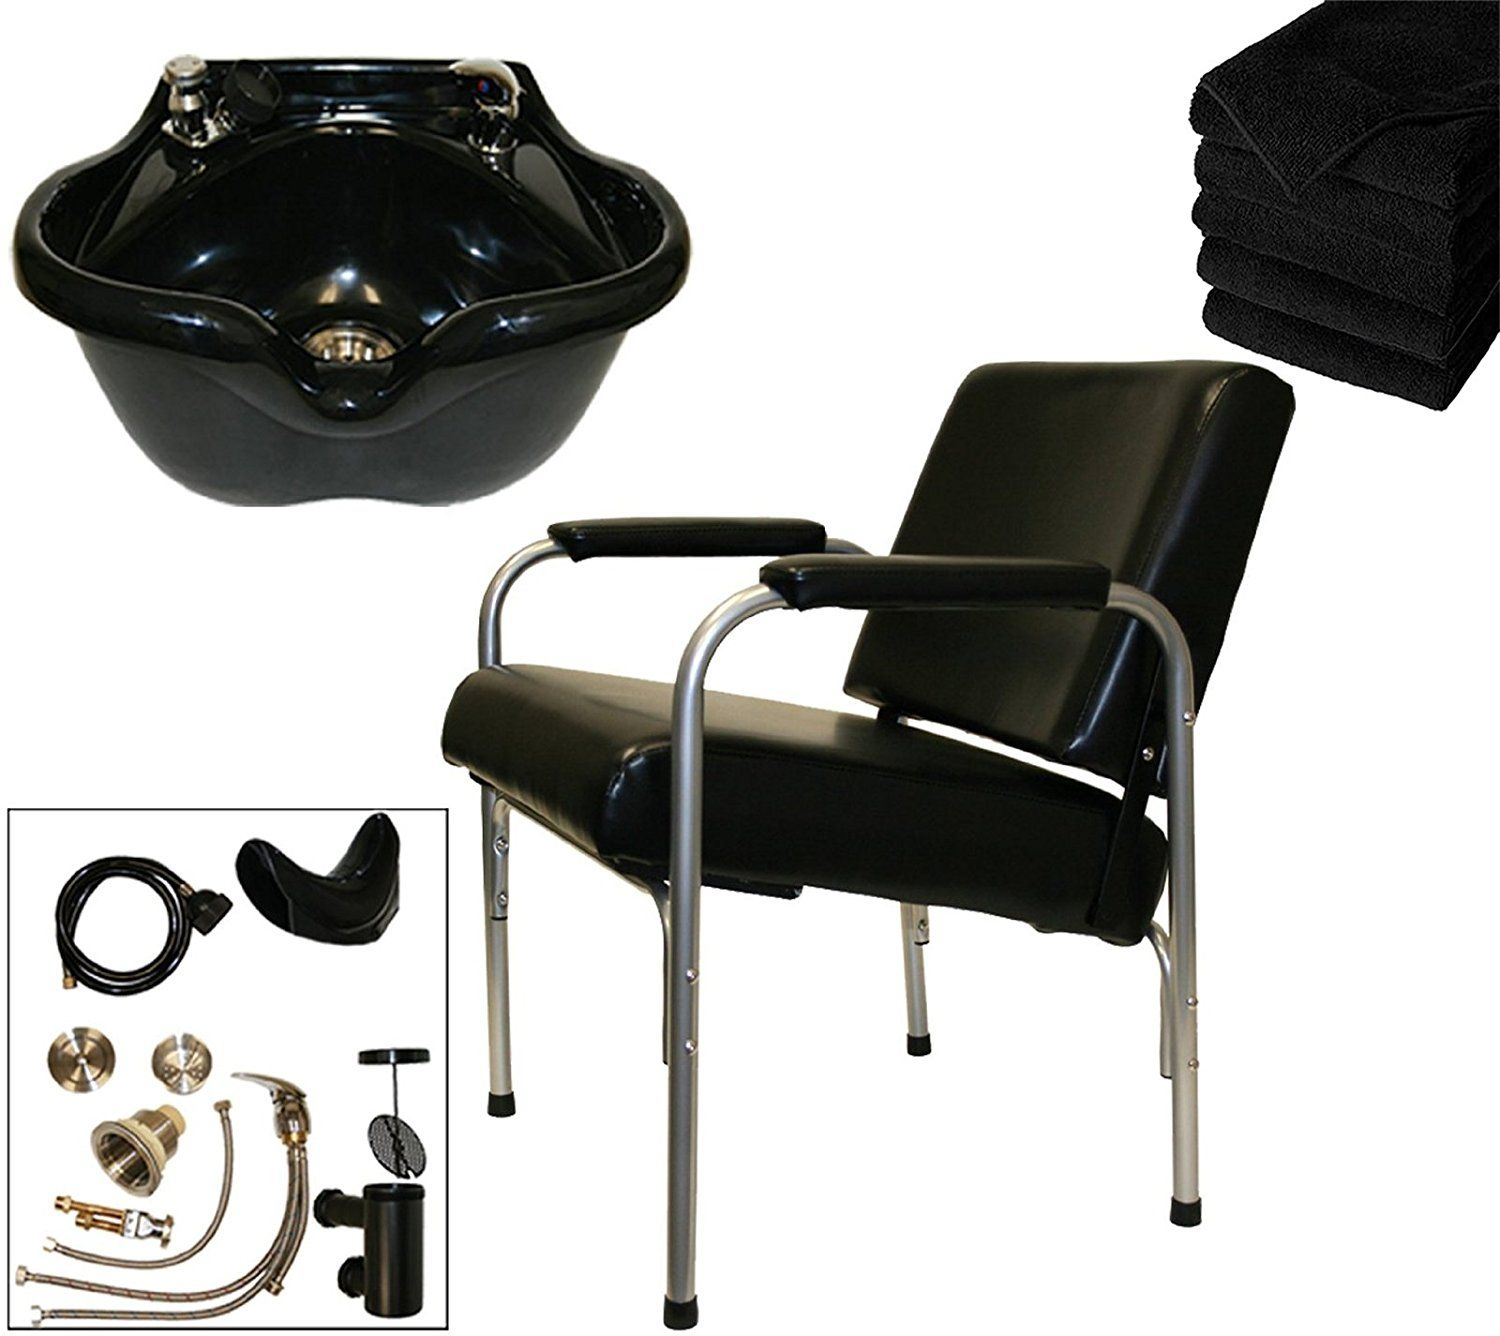 LCL Beauty Shampoo Package: Autorecline Shampoo Chair and Heart Shaped Acrylic Fiber Shampoo Bowl >>> Details can be found by clicking on the image.